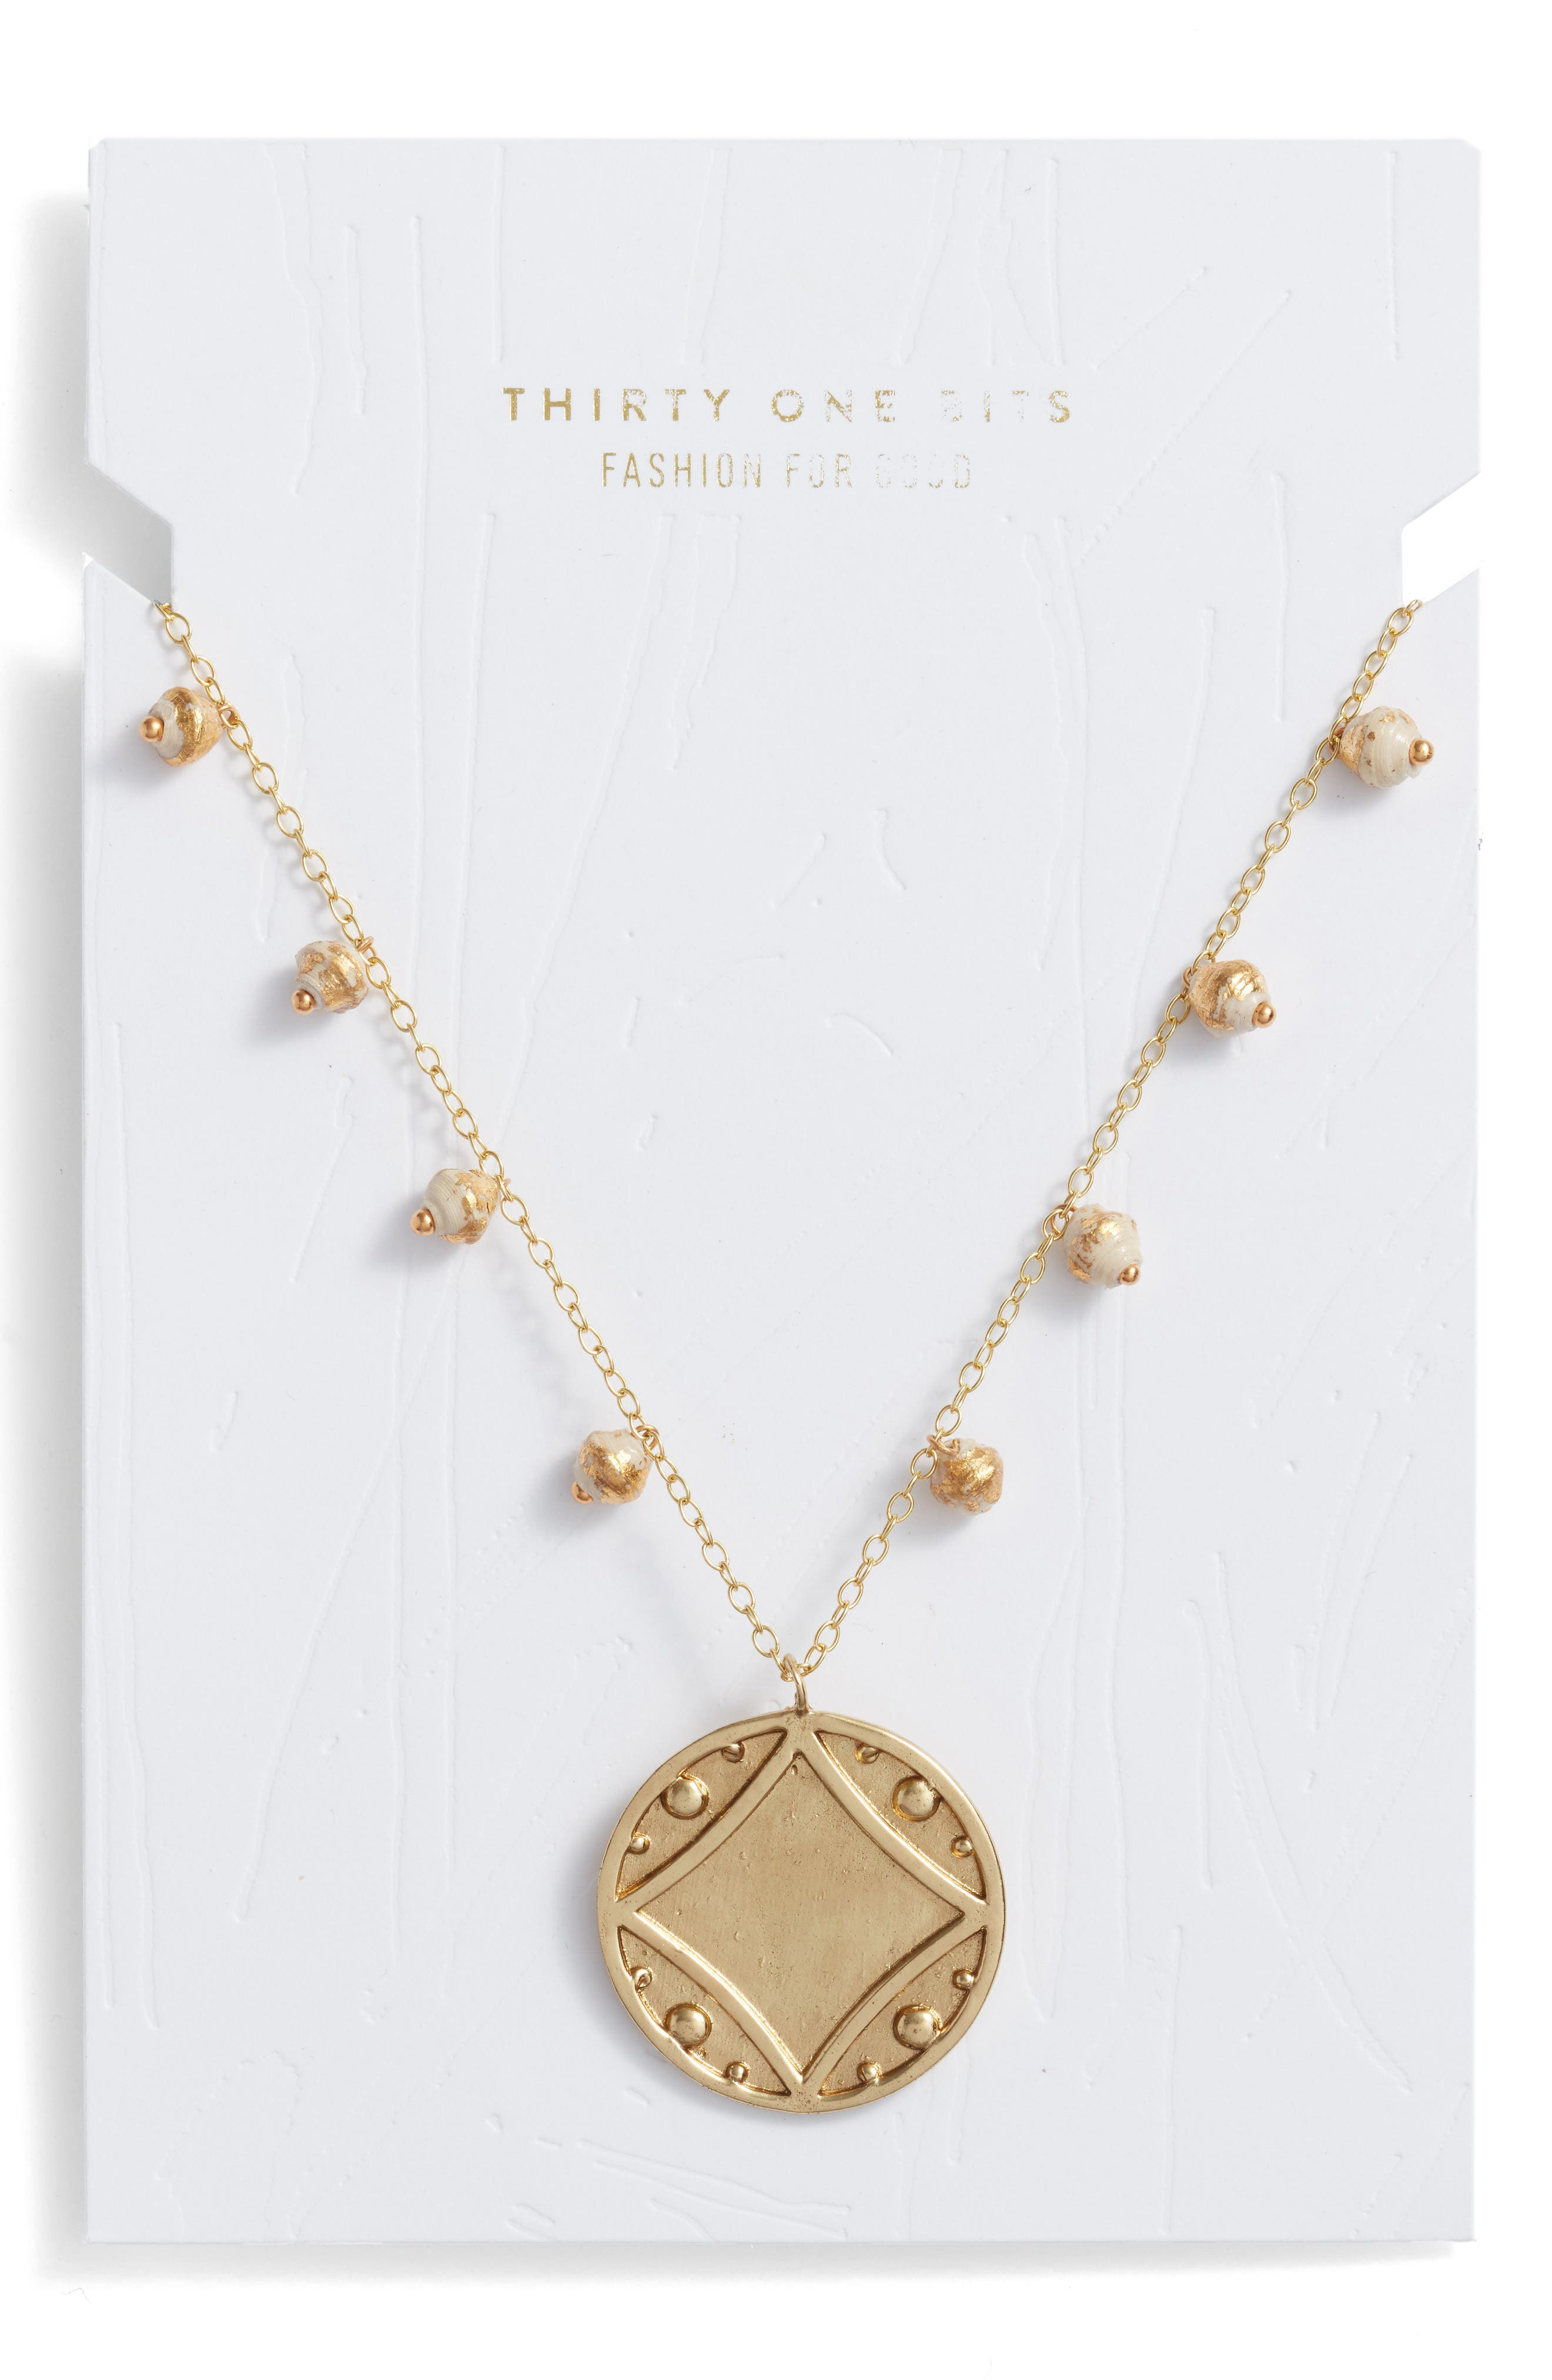 Early Light Pendant Necklace,                             Alternate thumbnail 2, color,                             Cream/ Gold